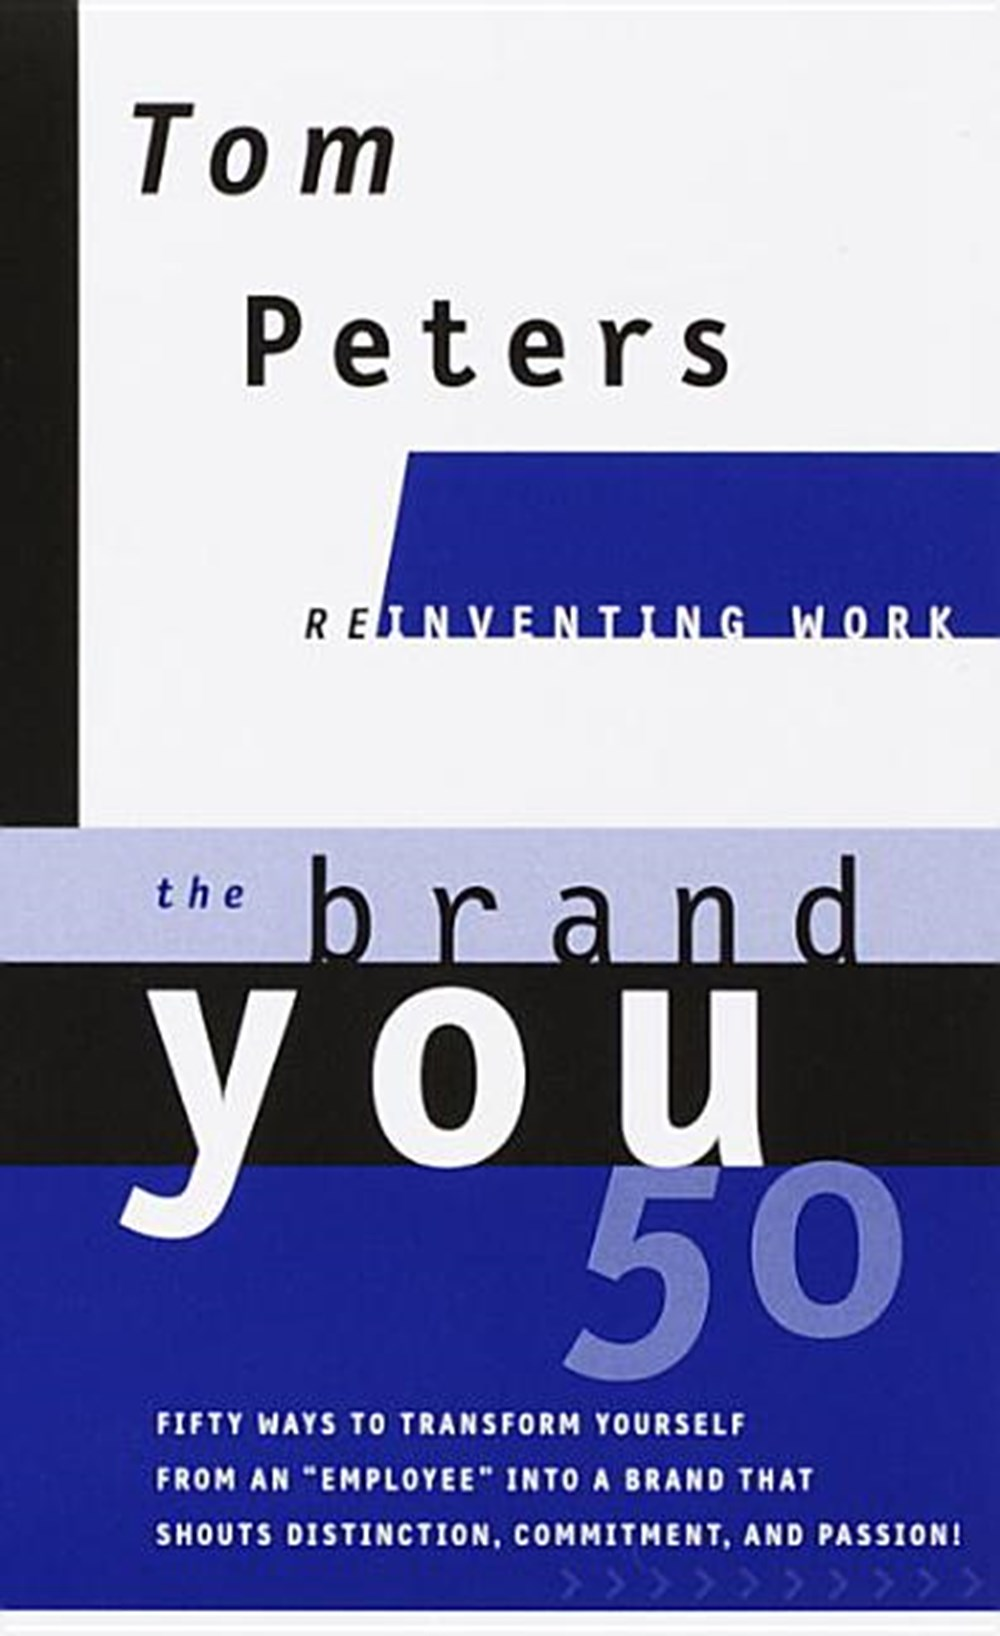 "Brand You50 (Reinventing Work) Fifty Ways to Transform Yourself from an ""employee"" Into a Brand That"